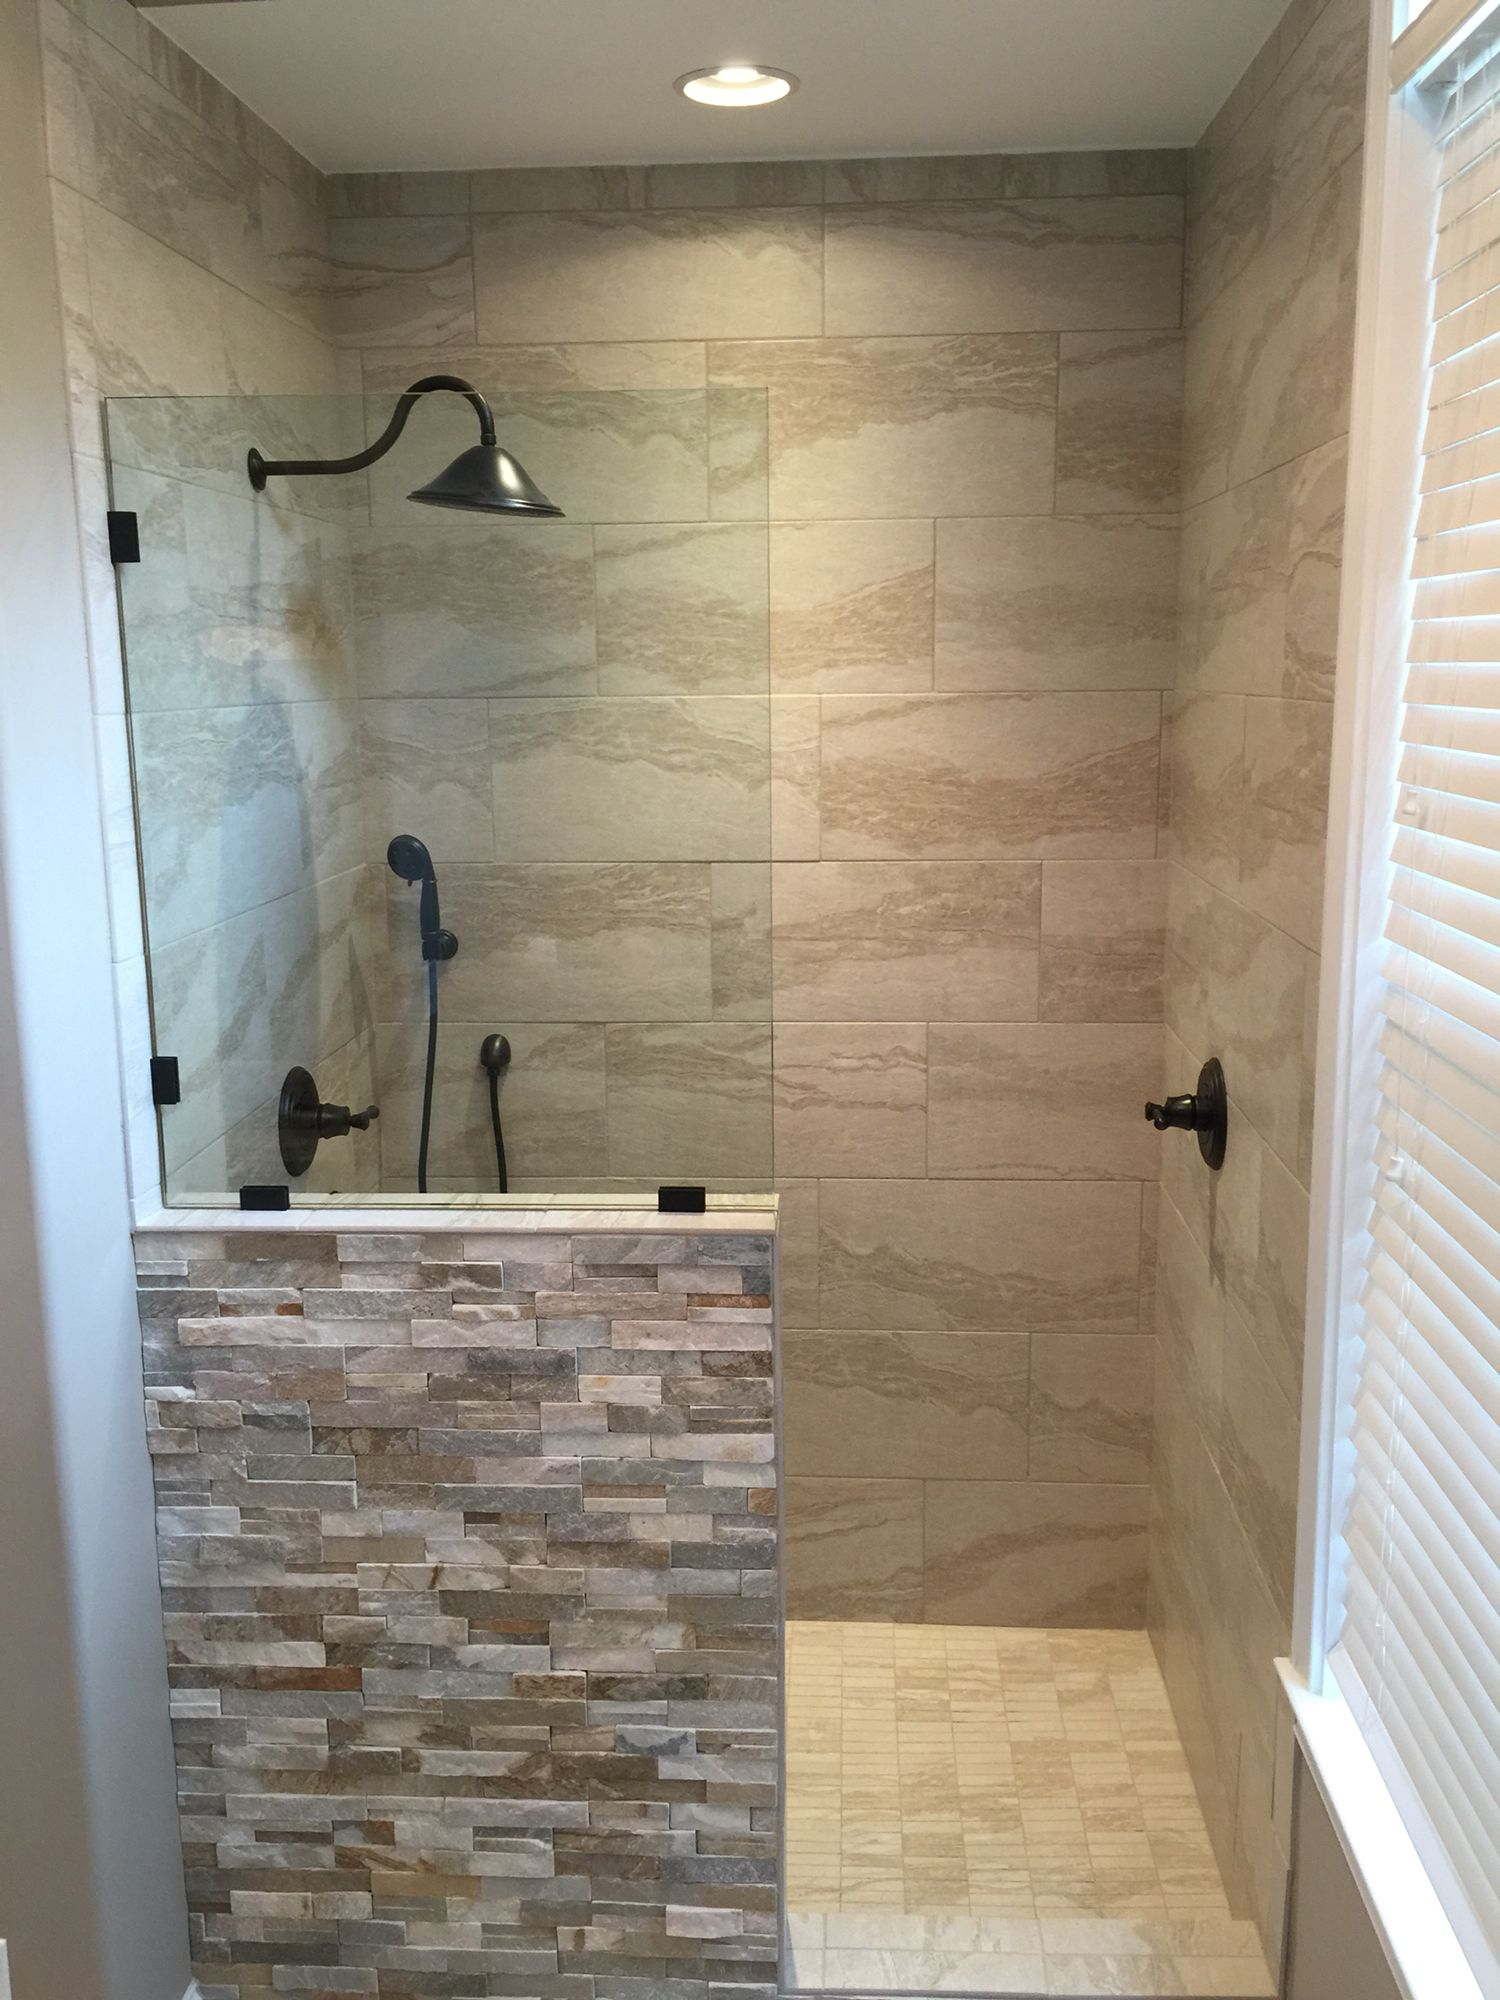 Remodeled Bathrooms With Showers new shower replaced the old jacuzzi tub | my bathroom | pinterest